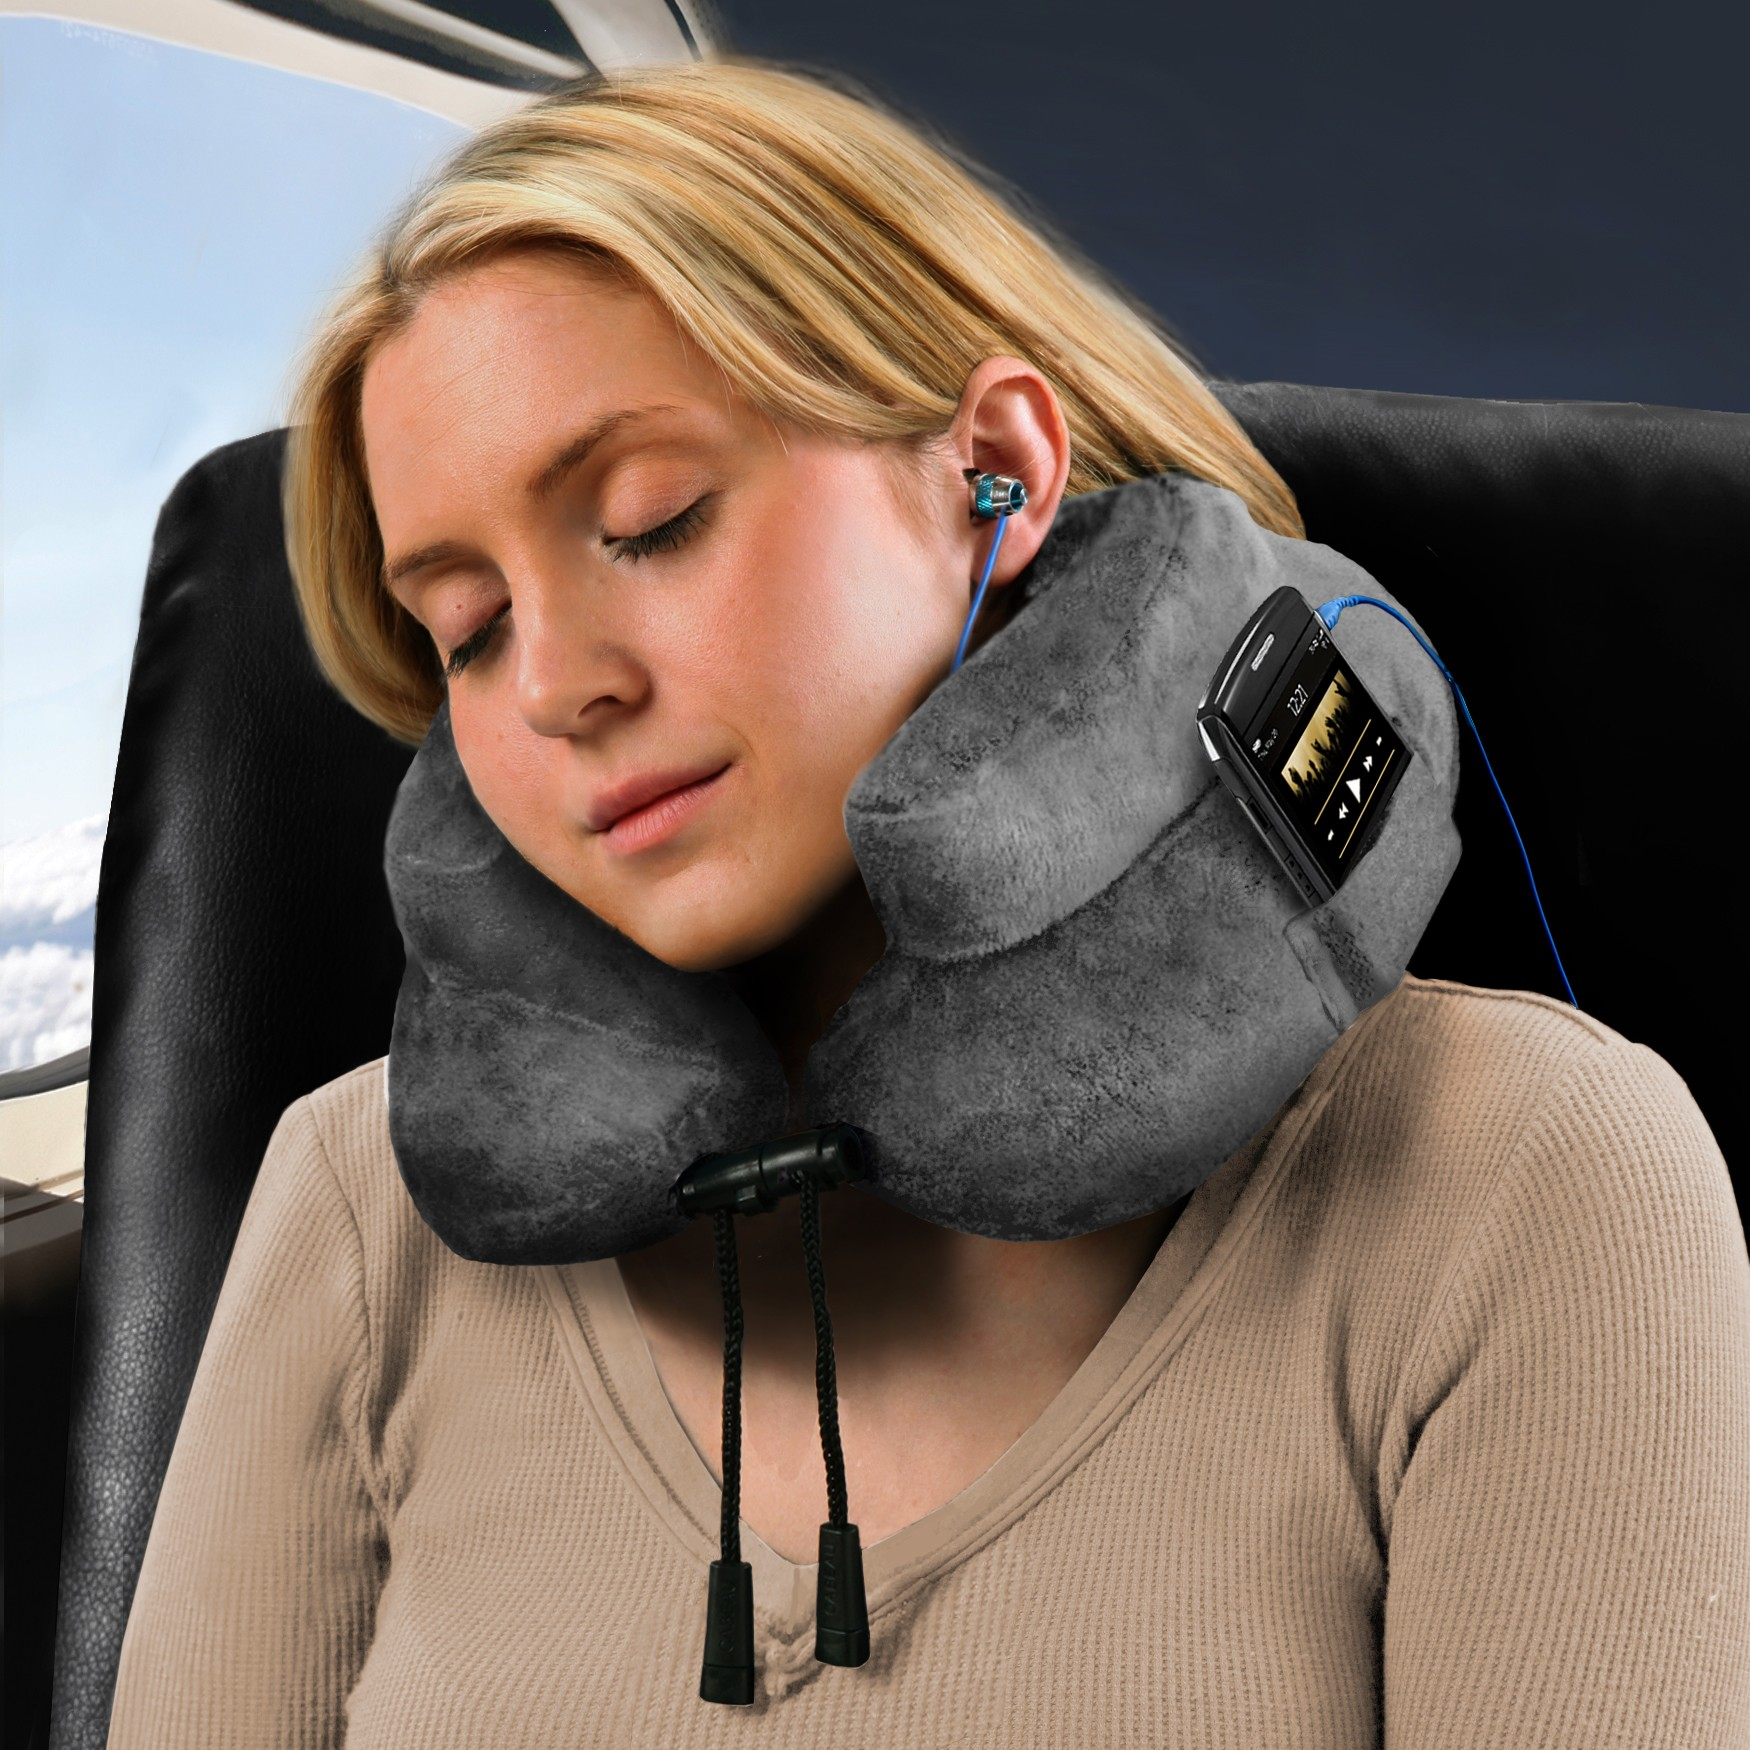 https://www.sleepsolutions.com.au/travel-pillows